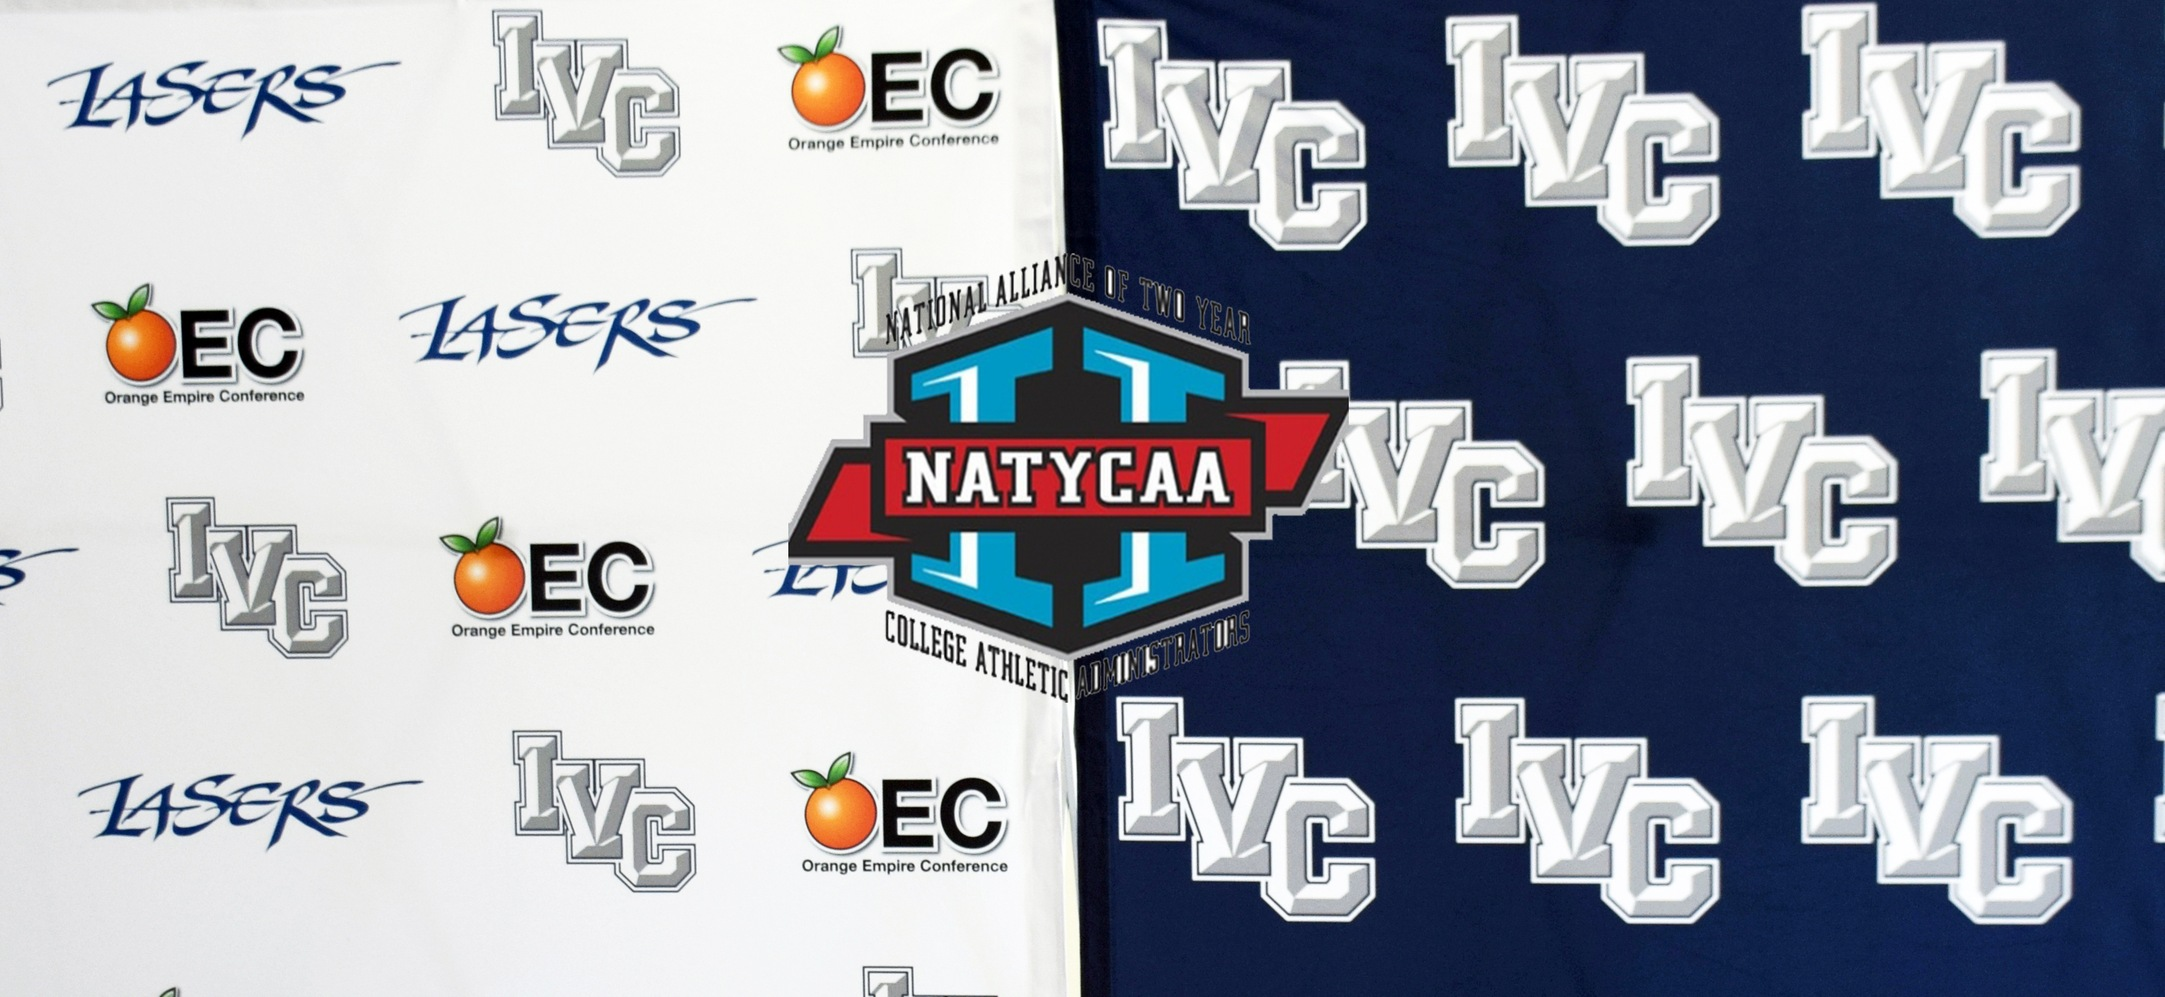 IVC athletics takes 14th in NATYCAA State Associations Division